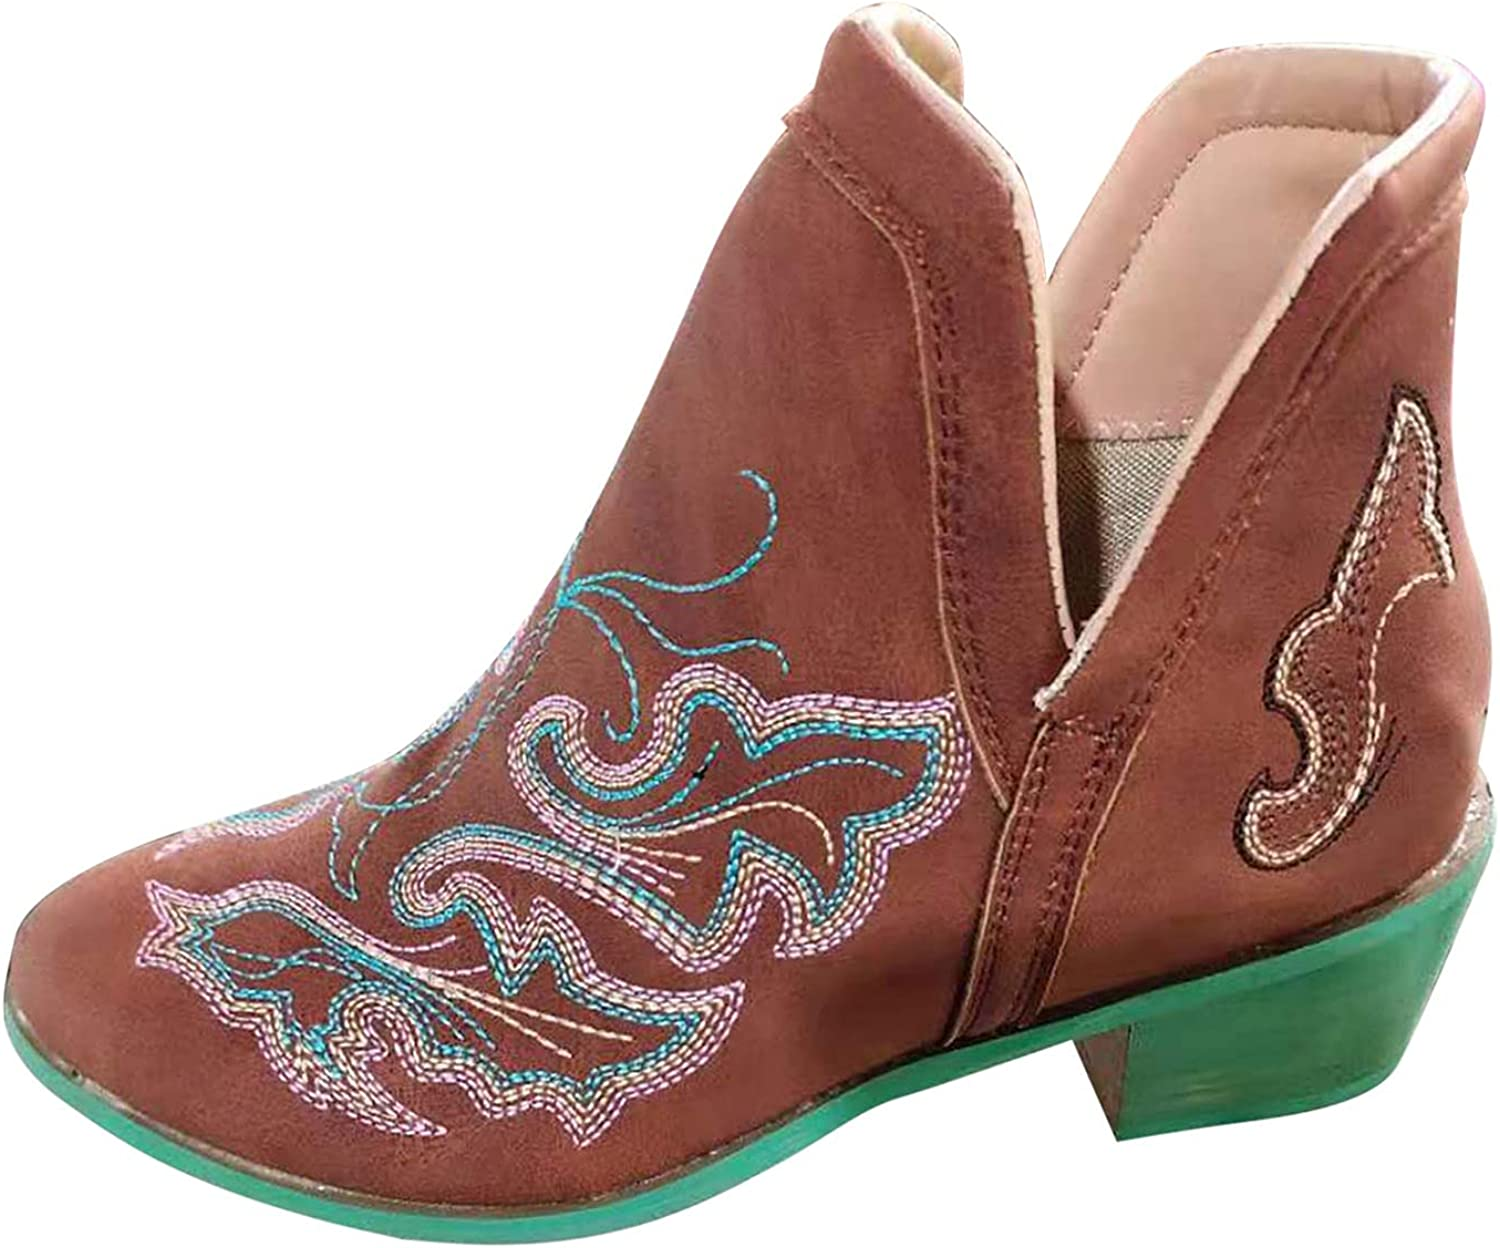 Womens Ankle Booties Side Zipper Leather Flats Boots Comfortable Outdoor Anti-Slip Waterproof Shoes Multicoloured